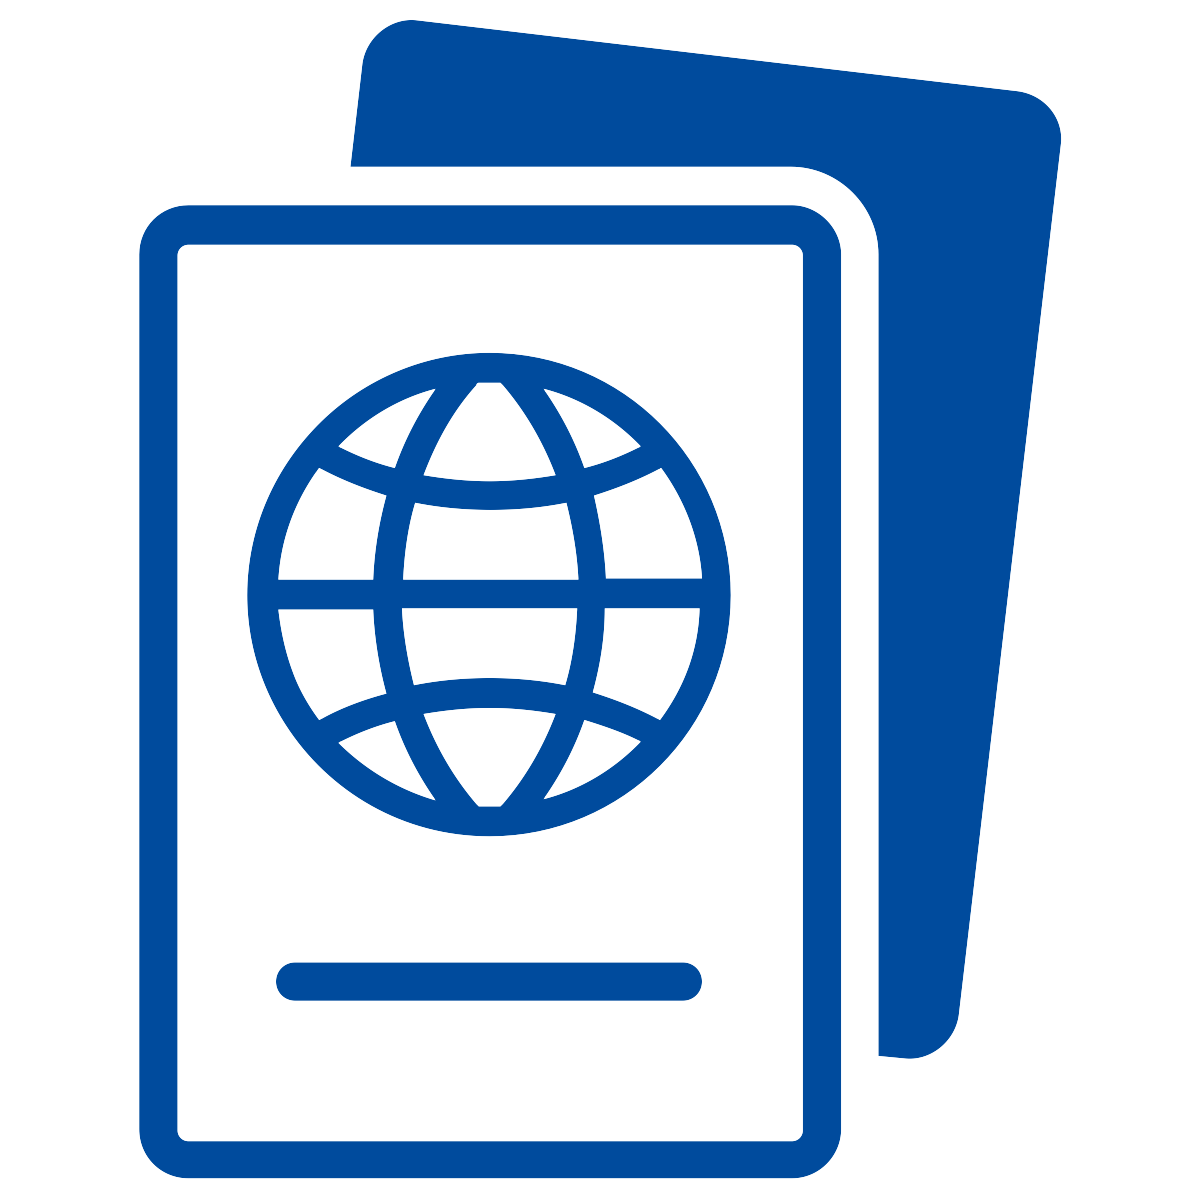 Need your travel documents in a hurry? Passport Health can help with passport and visa processing.